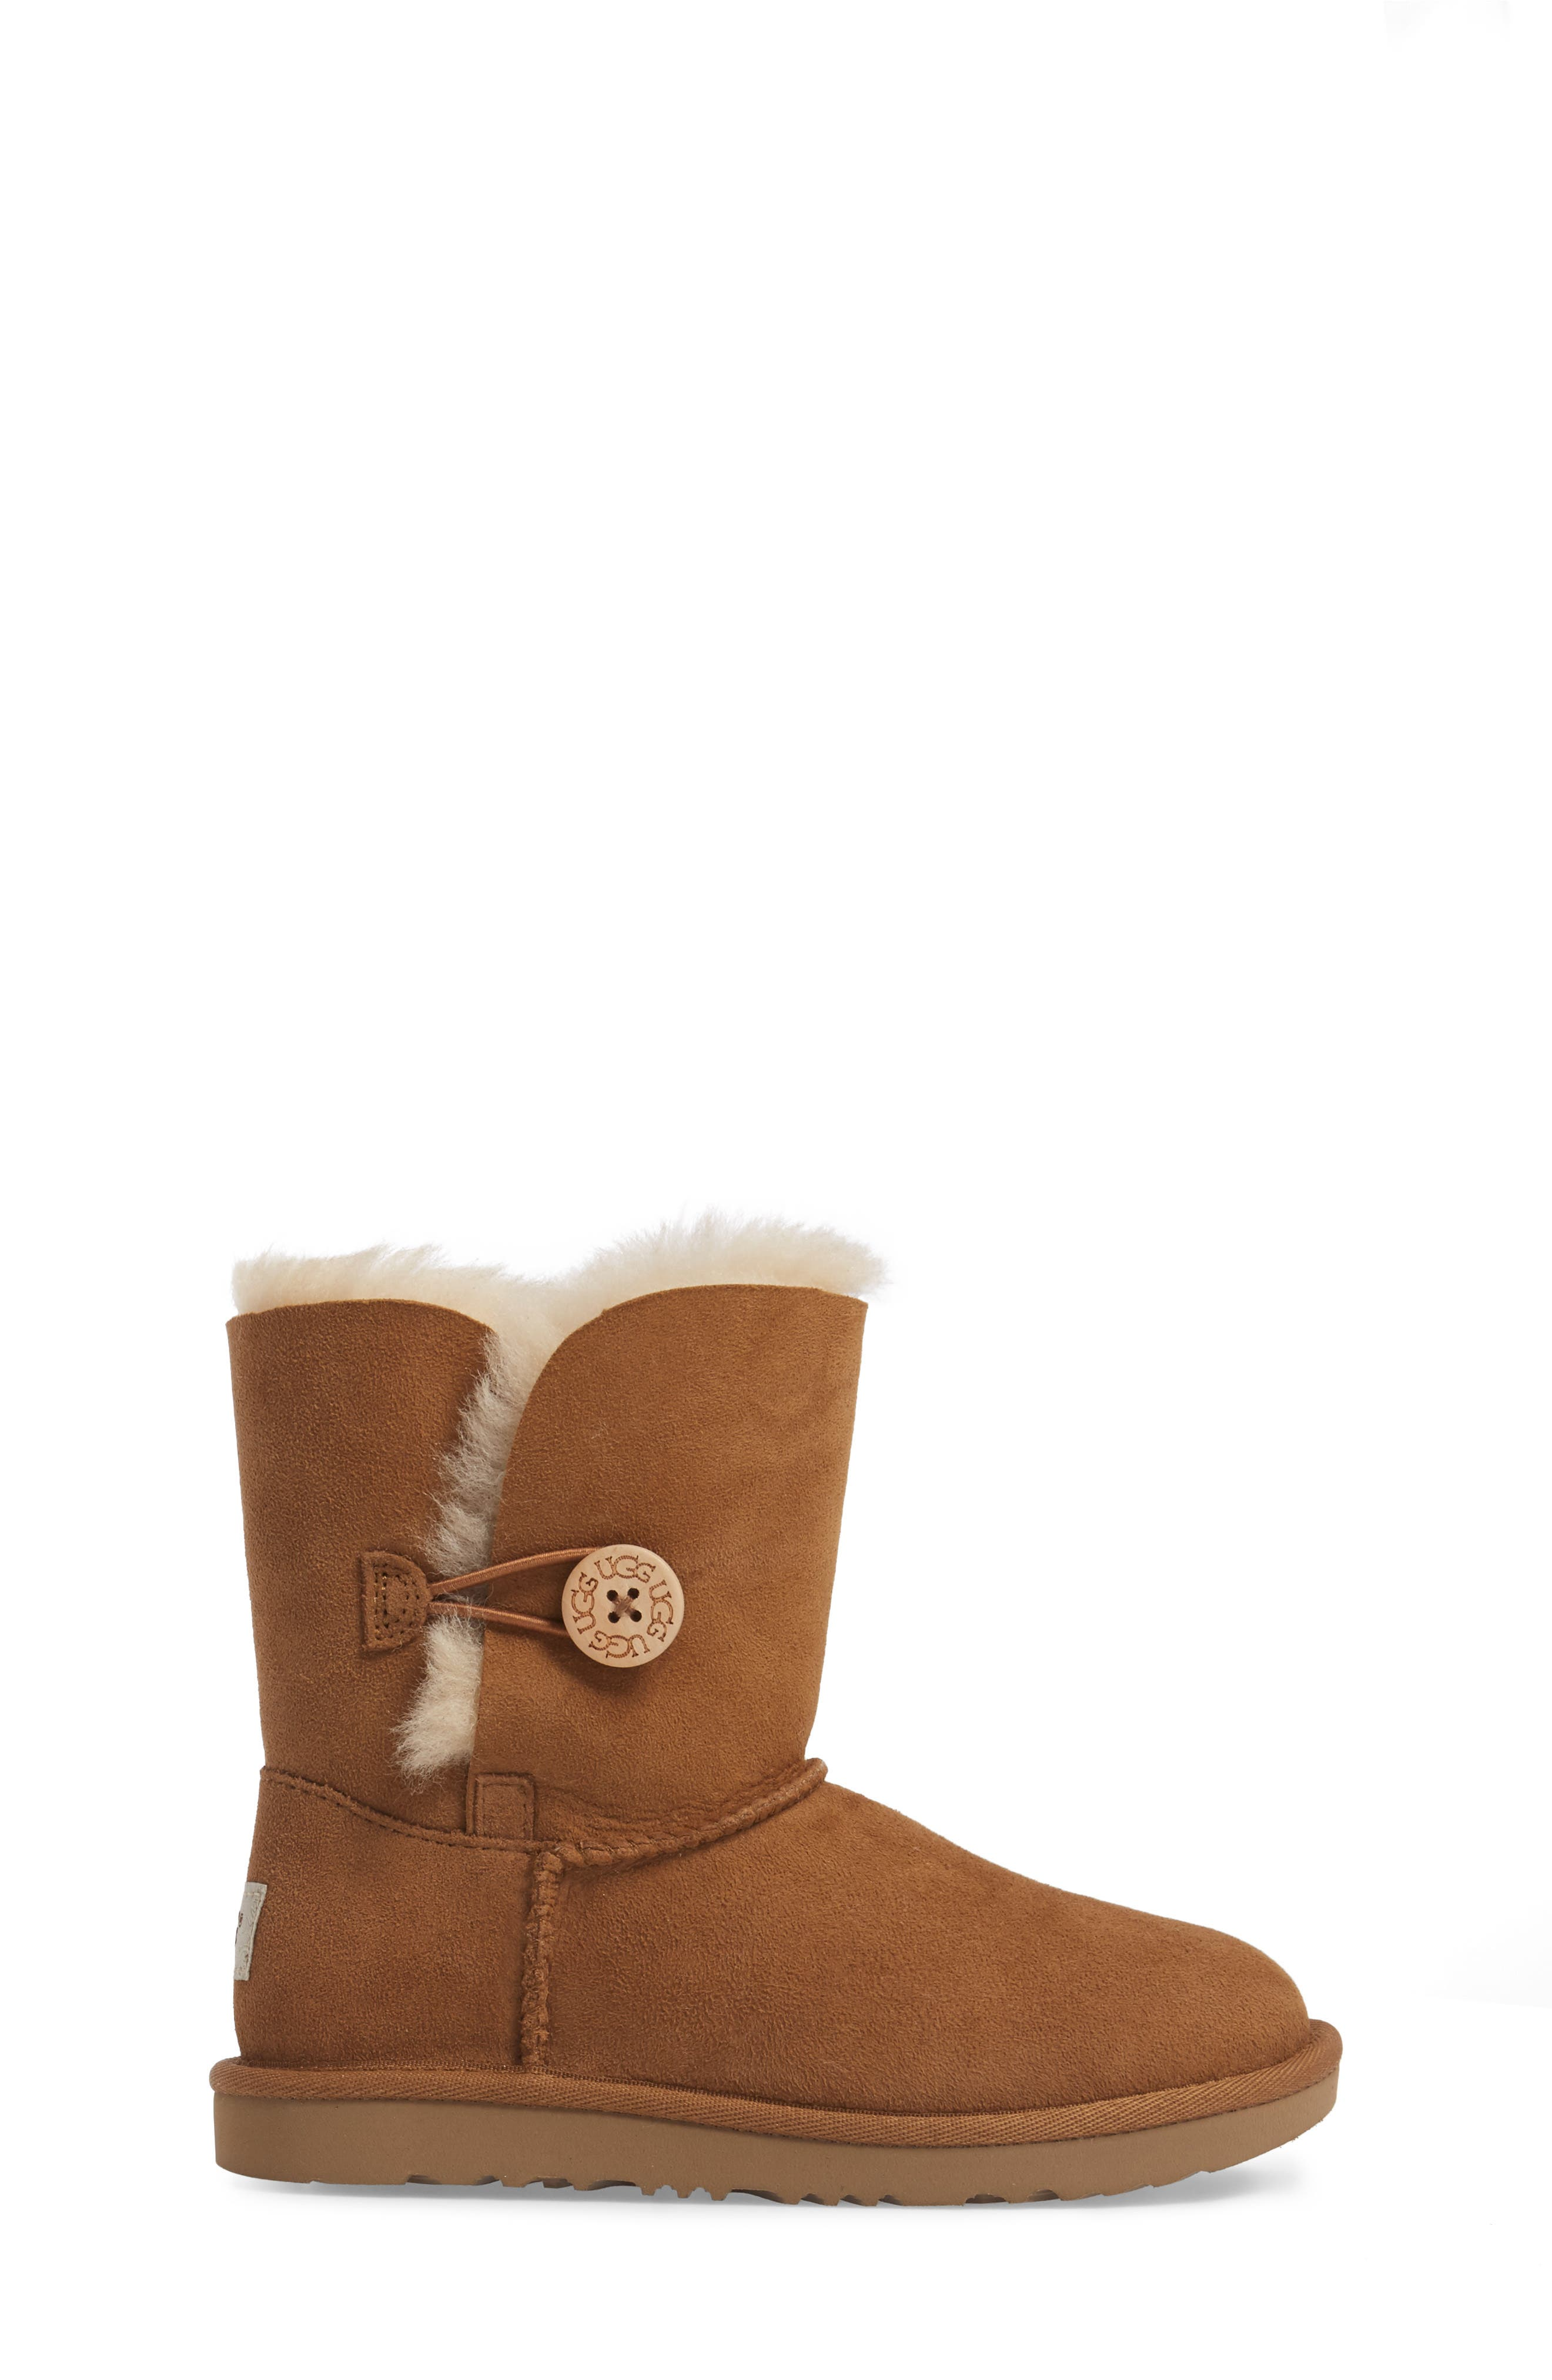 Alternate Image 3  - UGG® Bailey Button II Water Resistant Genuine Shearling Boot (Walker, Toddler, Little Kid & Big Kid)